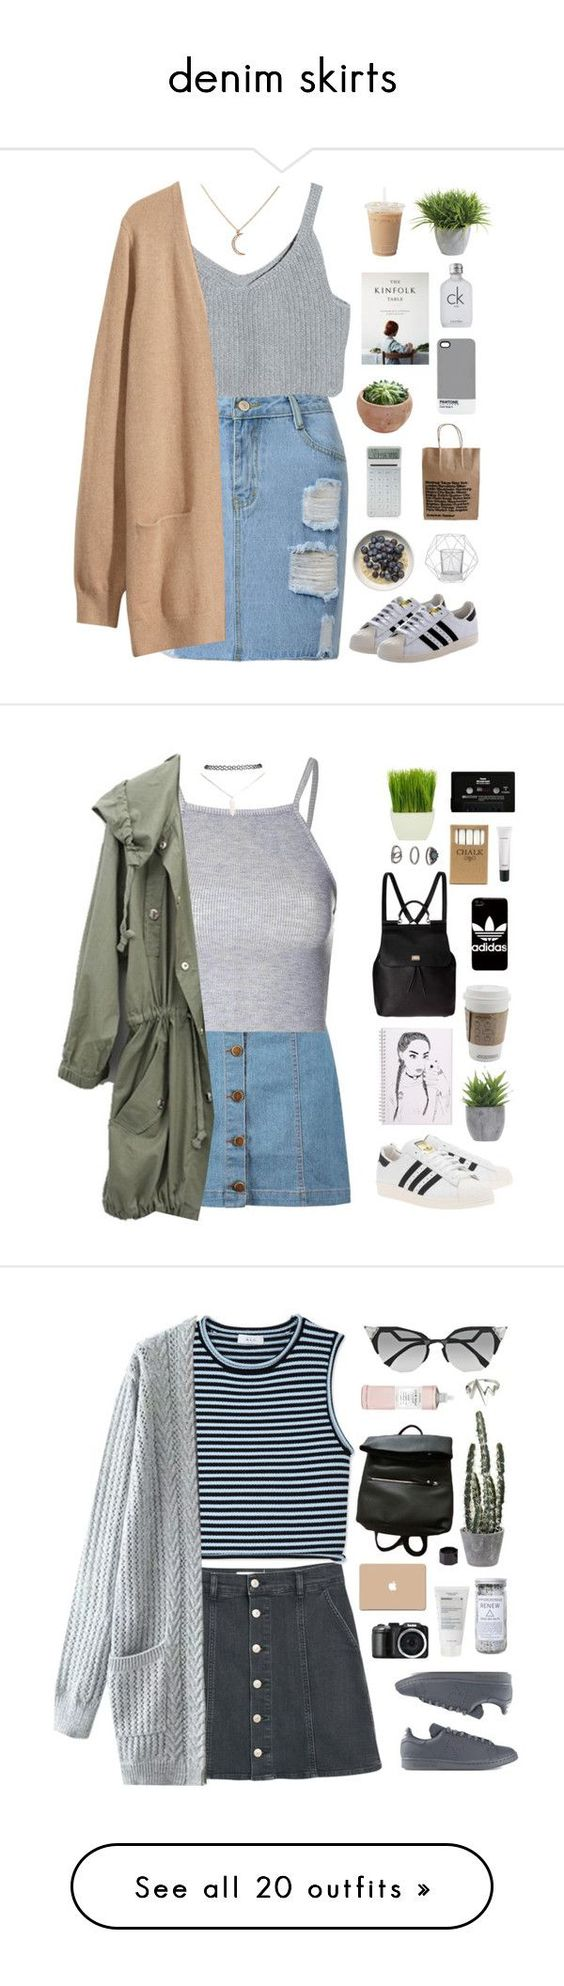 """""""denim skirts"""" by amy-lopez-cxxi ❤ liked on Polyvore featuring H&M, Ethan Allen, LEXON, Calvin Klein, Bloomingville, Pantone, adidas Originals, Boohoo, Glamorous and Wet Seal"""